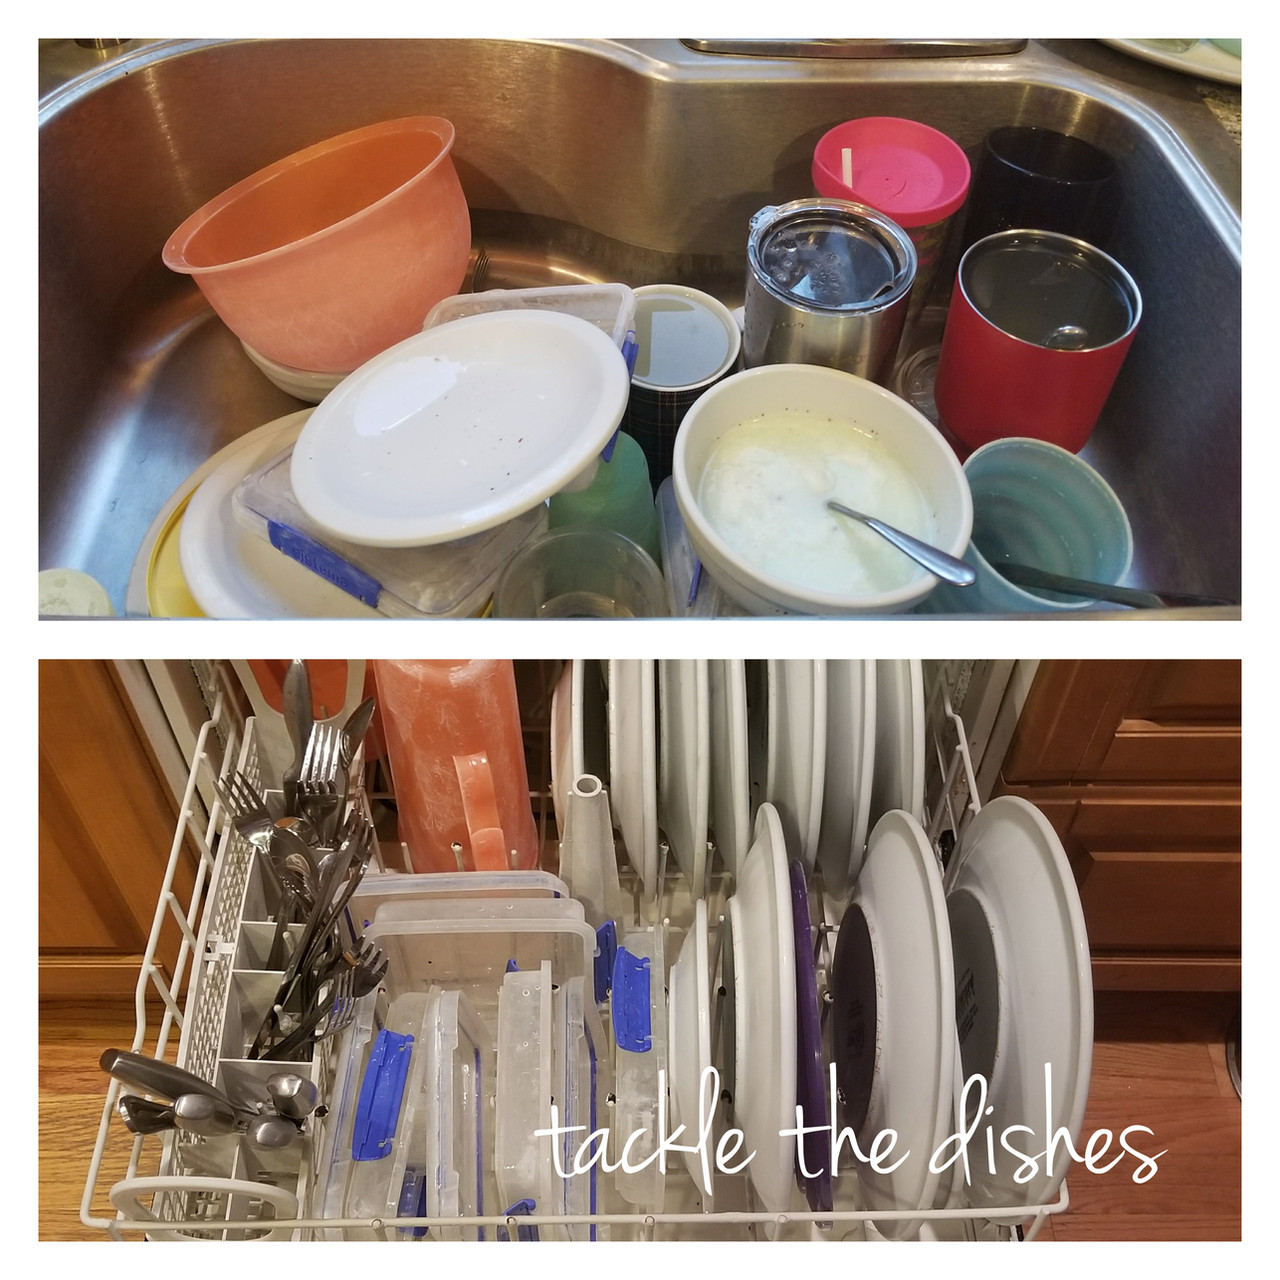 Tackle the dishes